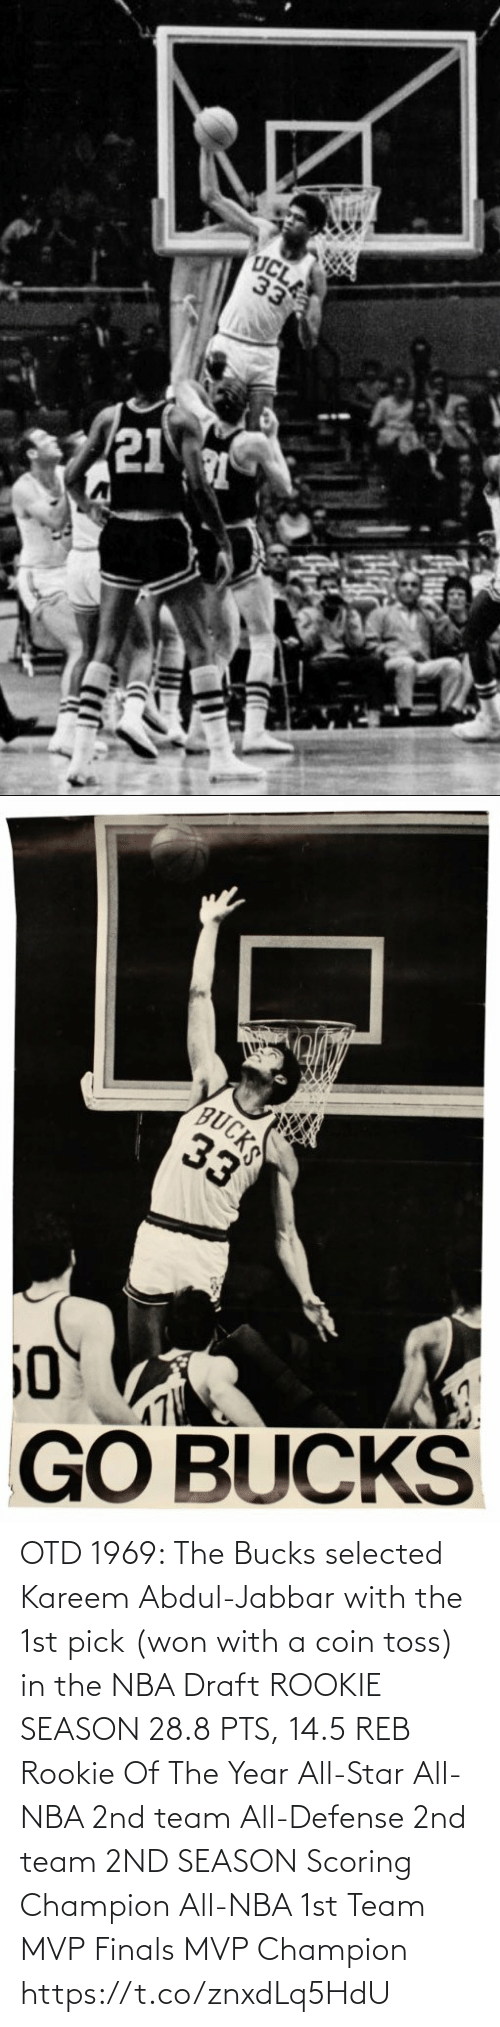 Season: OTD 1969: The Bucks selected Kareem Abdul-Jabbar with the 1st pick (won with a coin toss) in the NBA Draft   ROOKIE SEASON 28.8 PTS, 14.5 REB Rookie Of The Year All-Star All-NBA 2nd team All-Defense 2nd team  2ND SEASON Scoring Champion All-NBA 1st Team MVP Finals MVP Champion https://t.co/znxdLq5HdU